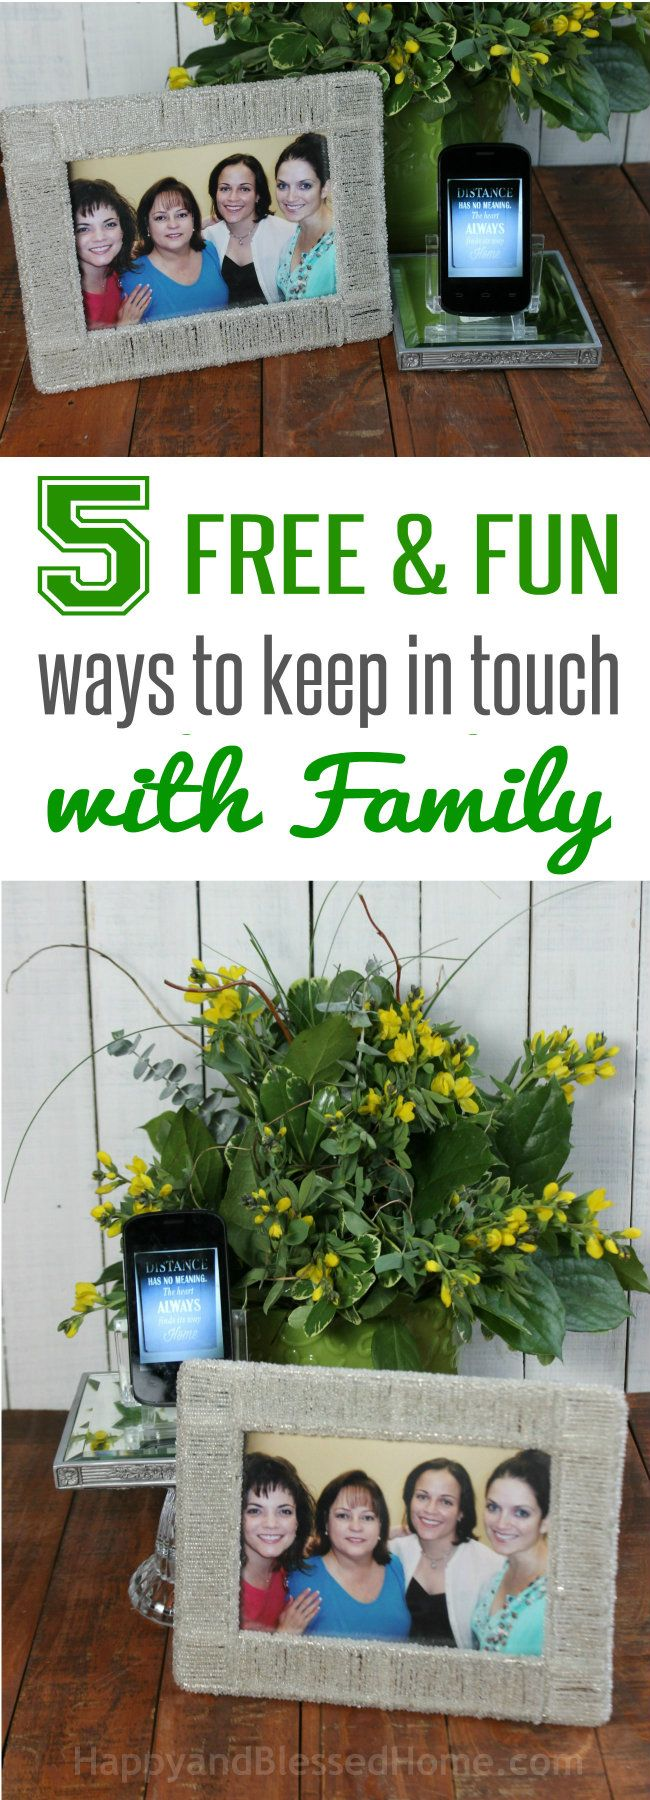 Great list of free apps for 5 Free and Fun Ways to keep in touch with Family - Video | Skype | Photo Sharing | Online Chat  #MobileMemories #cbias #FamilyMobile #ad #freeapps